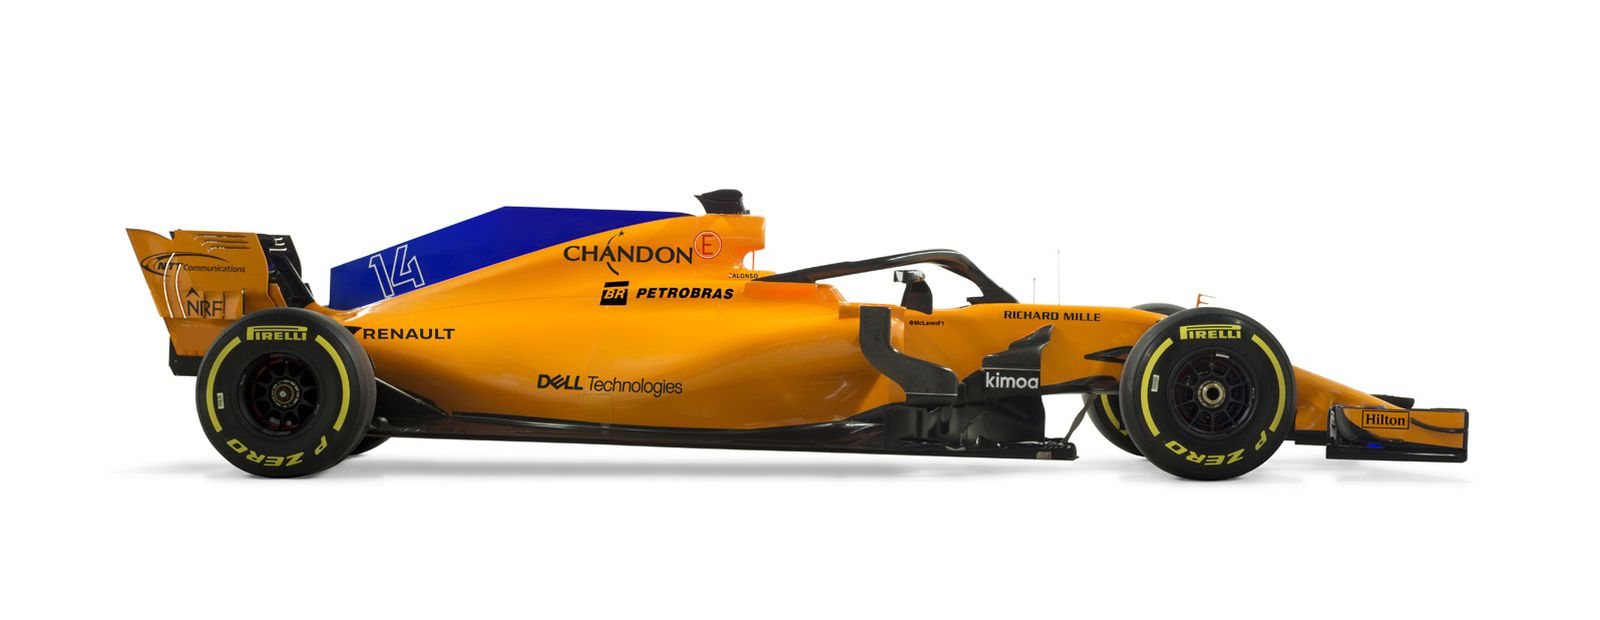 hight resolution of 3 2 3 be brave unveiling the mclaren mcl33